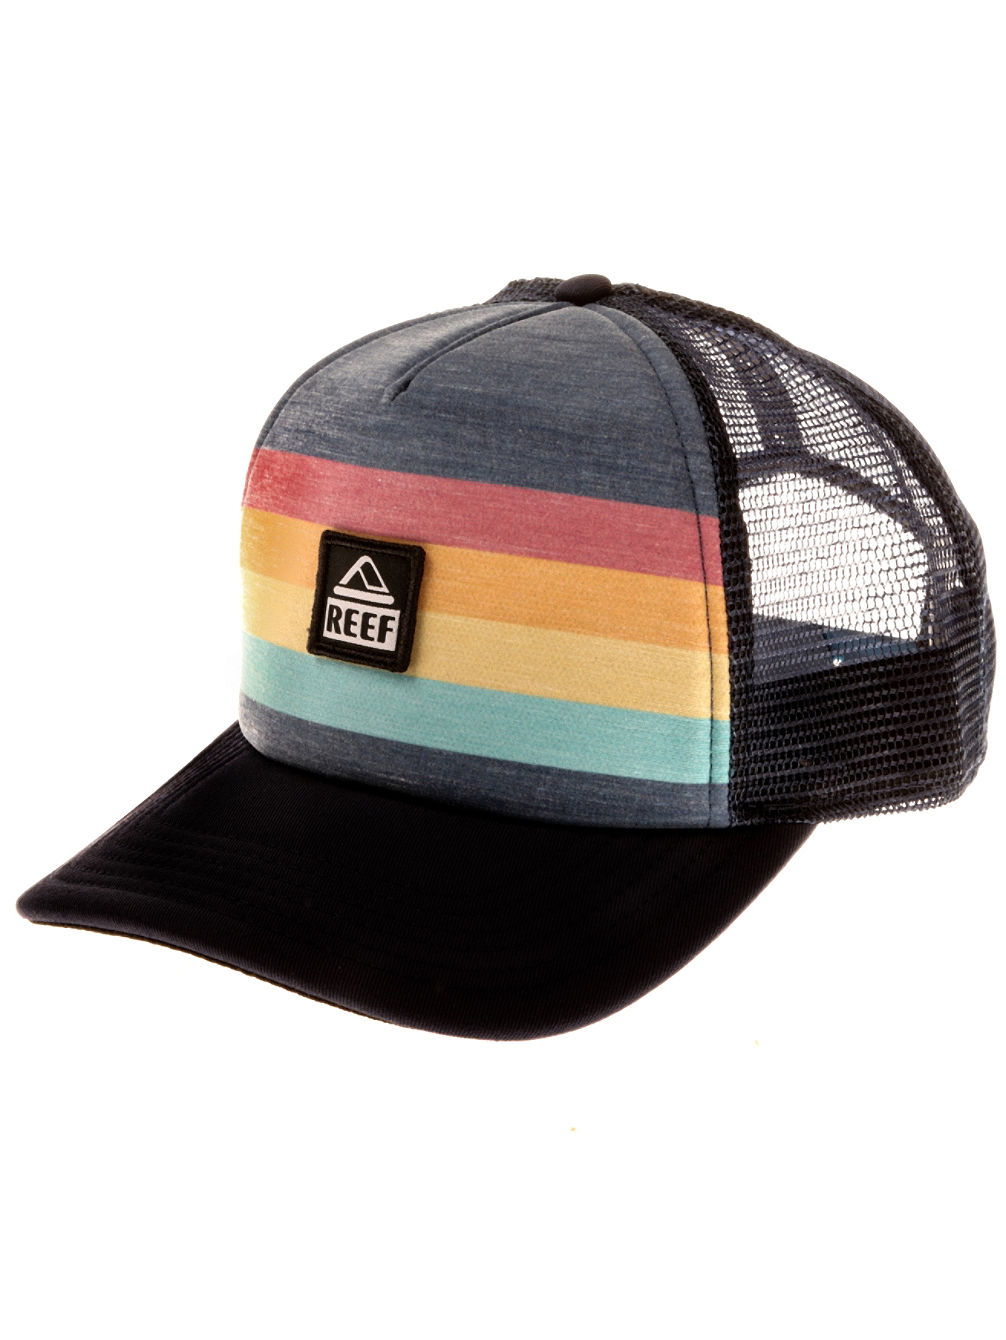 Buy Reef Simple Cap online at blue-tomato.com 0d3e6007a1b7